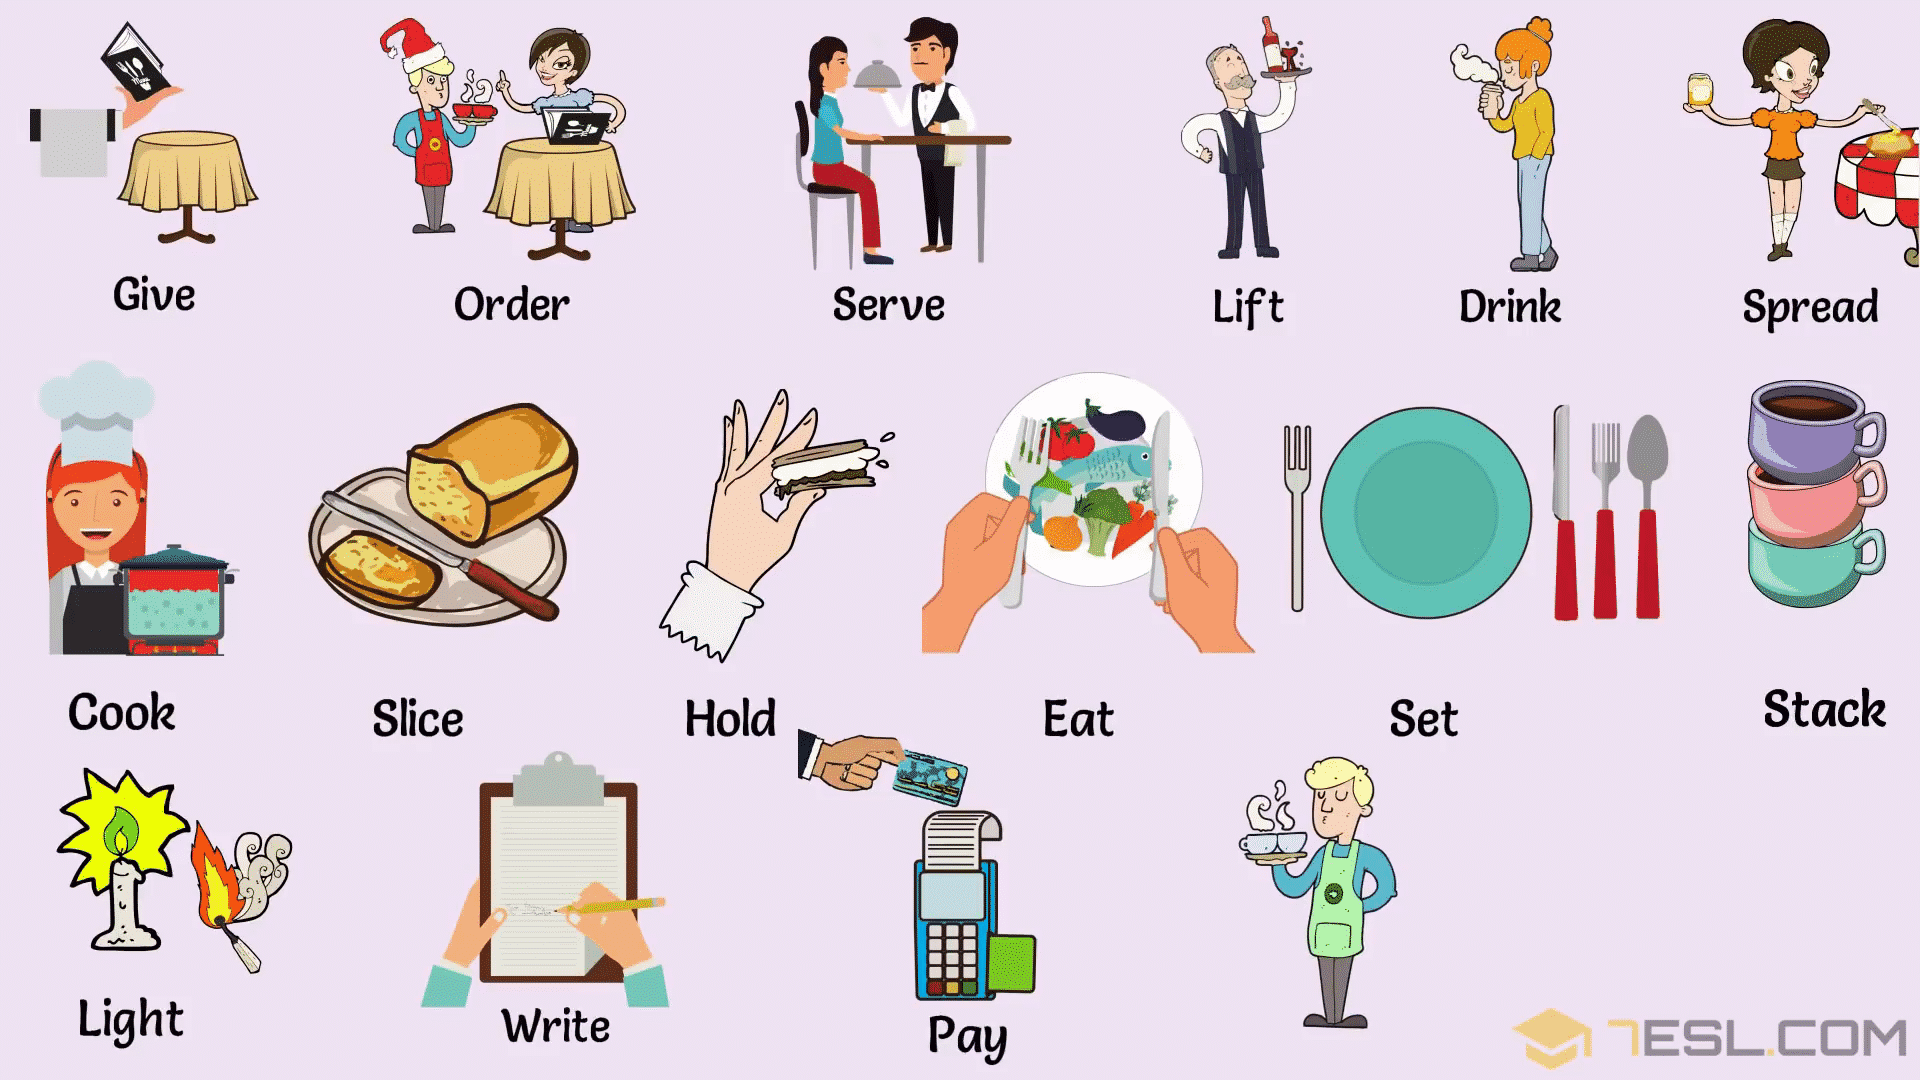 Restaurant Verbs List with Pictures